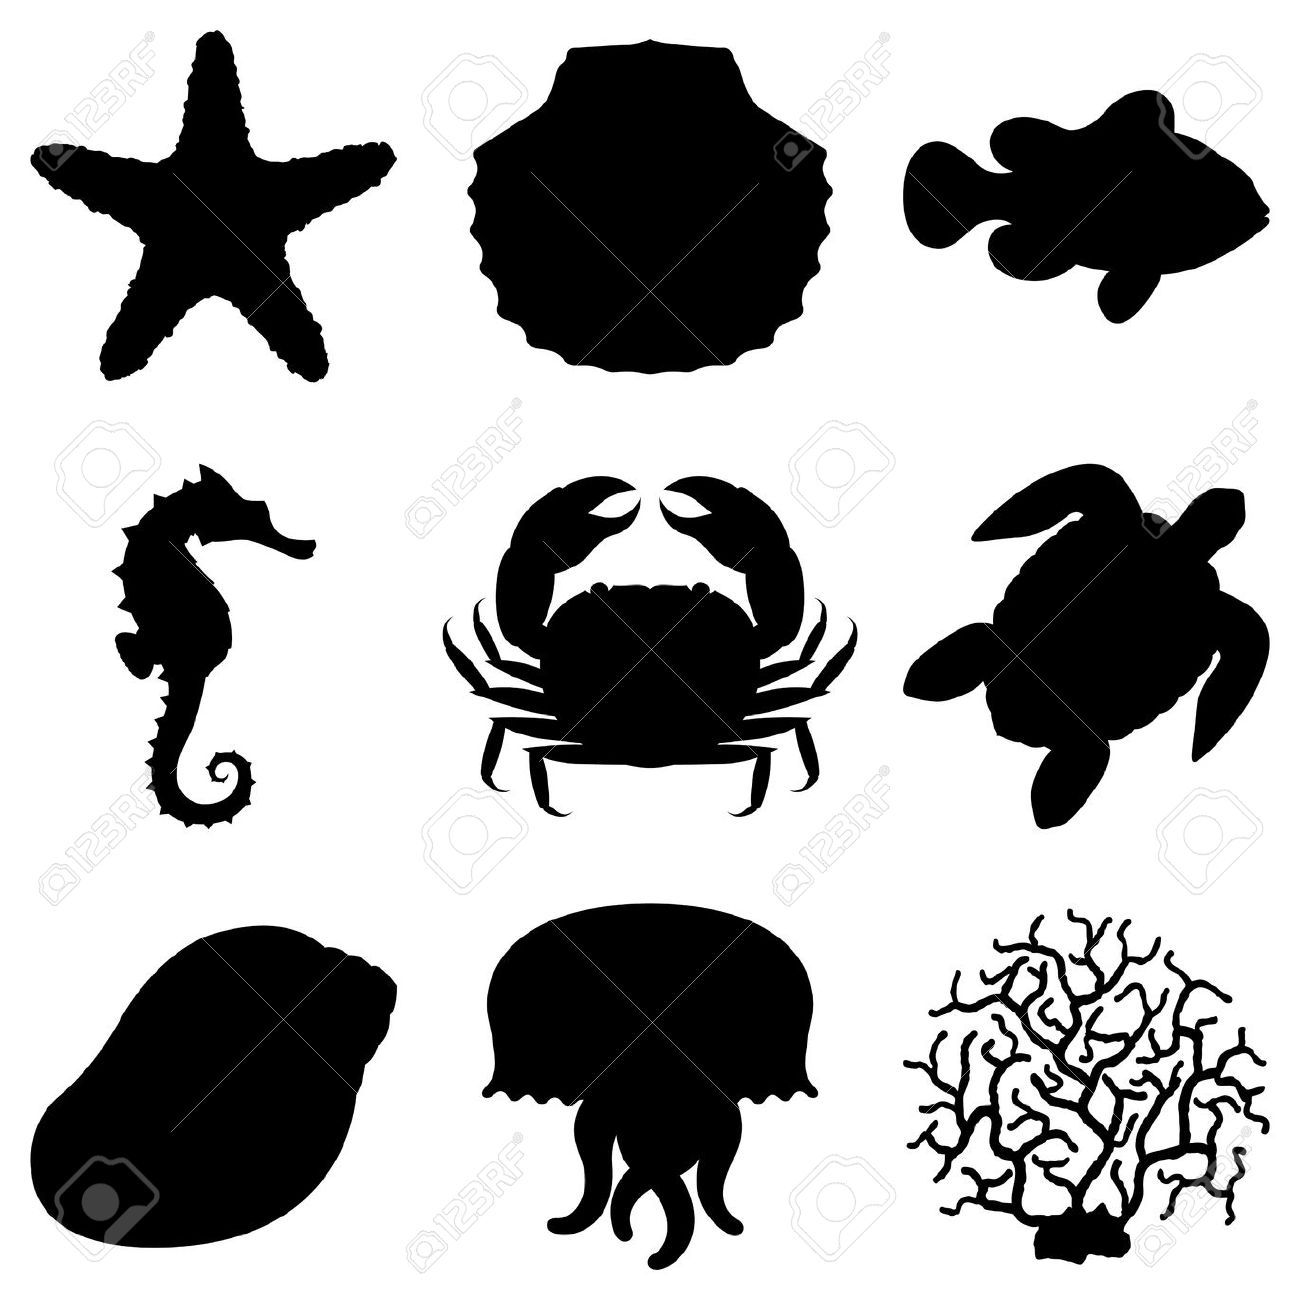 Image Result For Sea Turtle Silhouette